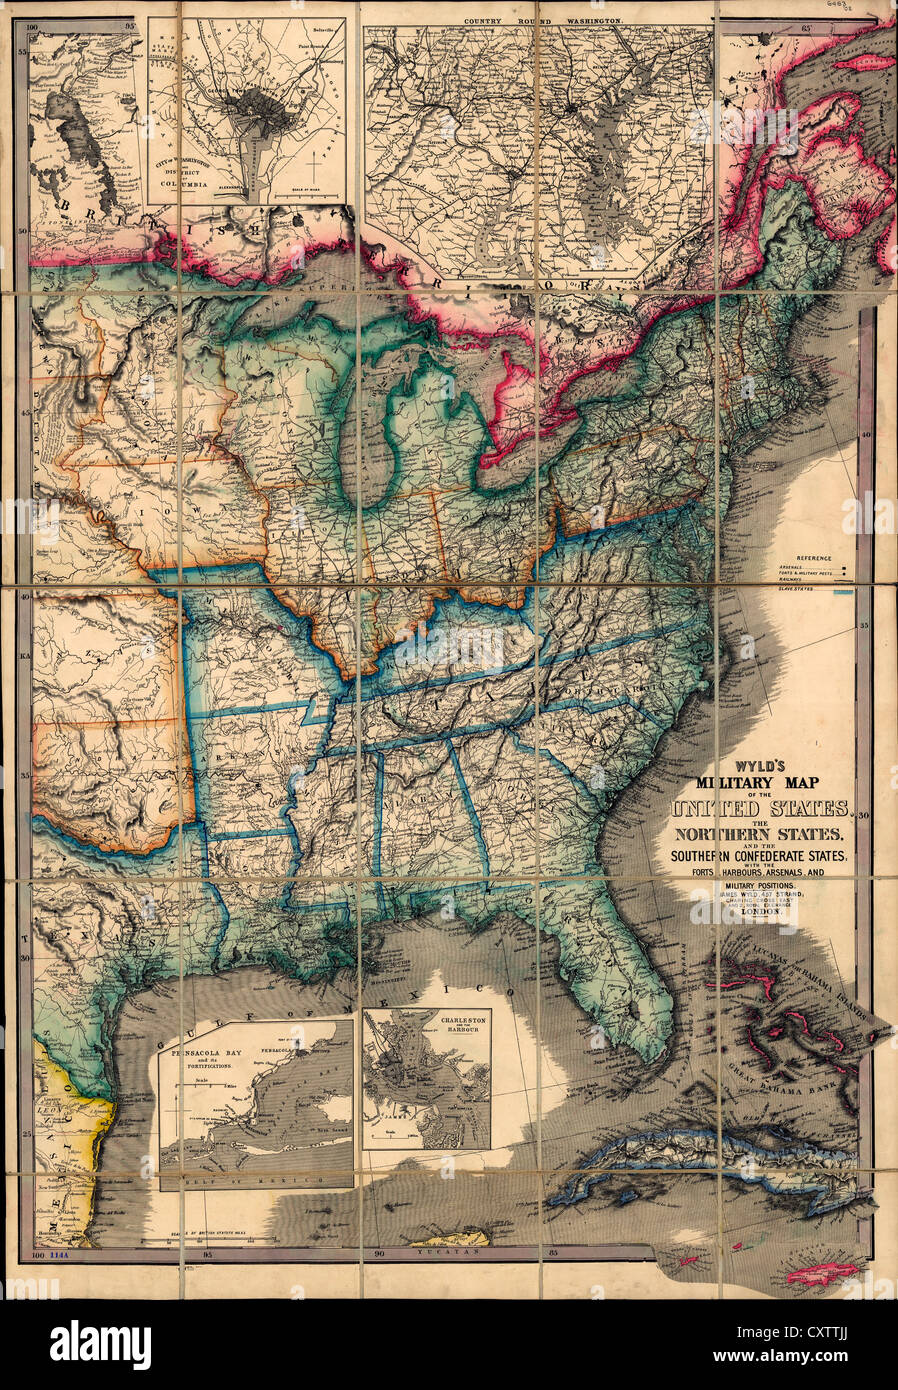 Map Of United States Civil War Stock Photos & Map Of United States ...